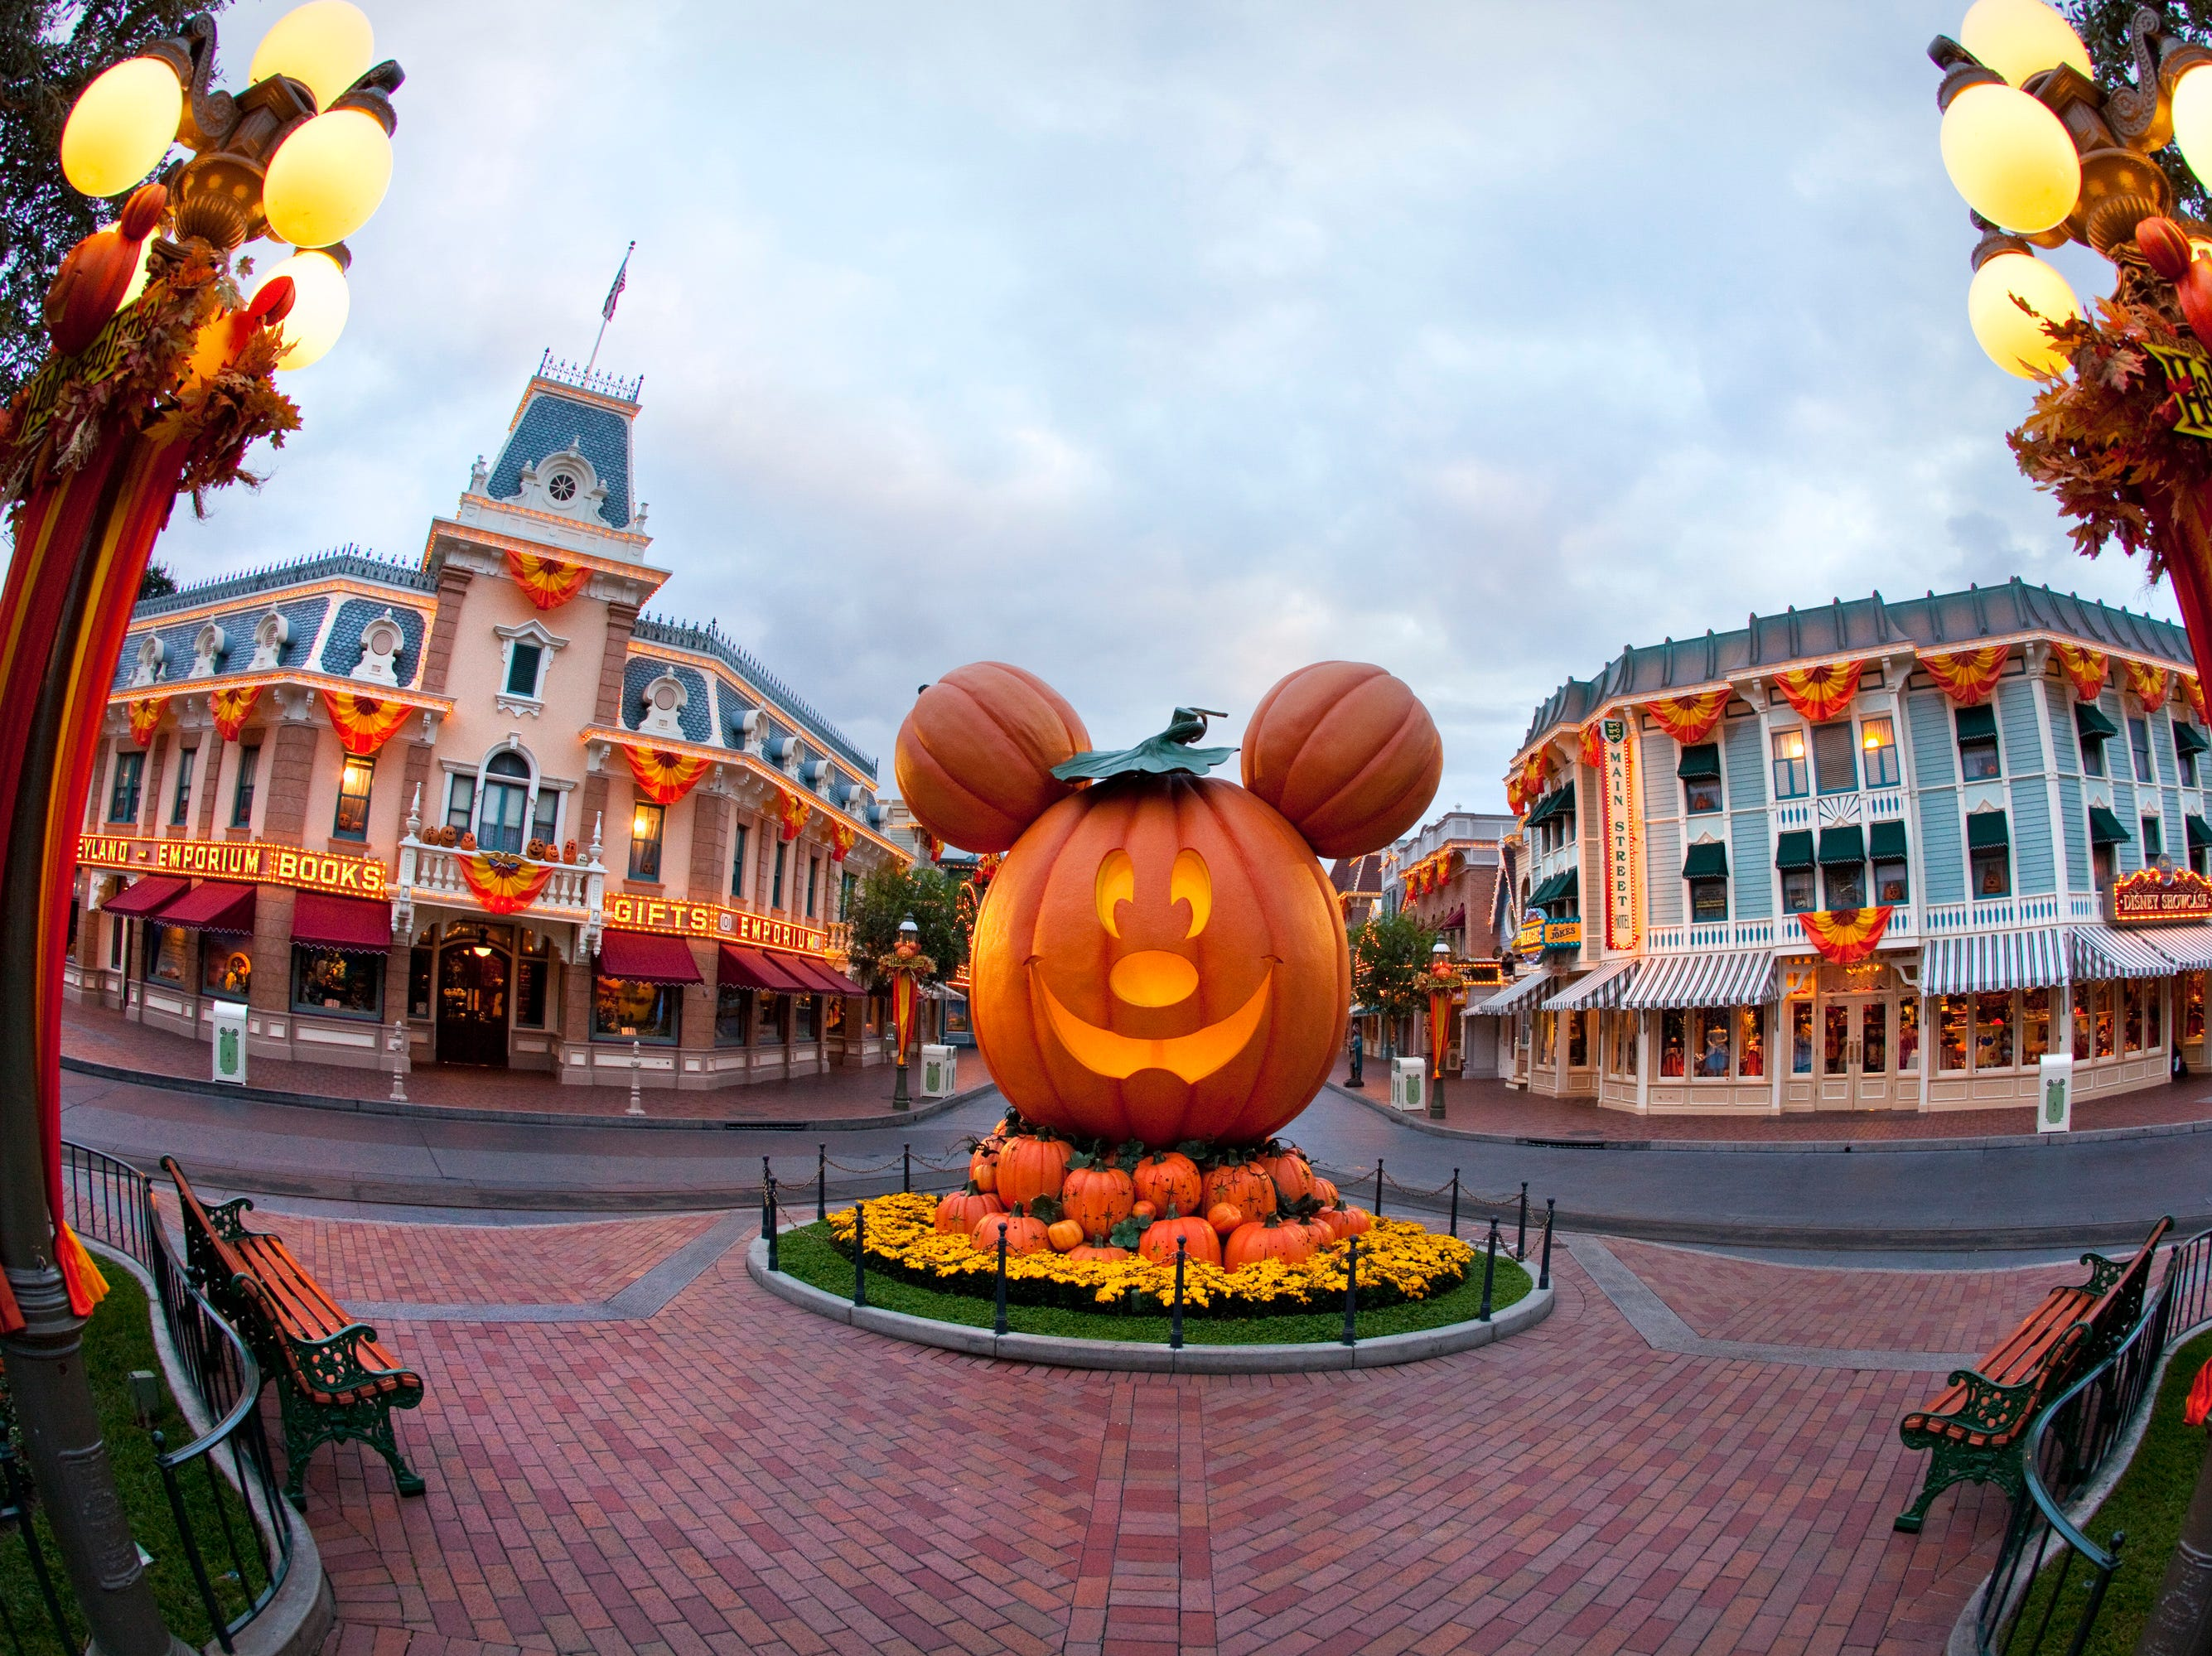 A Mickey Mouse-inspired jack-o'-lantern on Main Street, U.S.A., celebrates the spirit of the Halloween season at Disneyland Park.